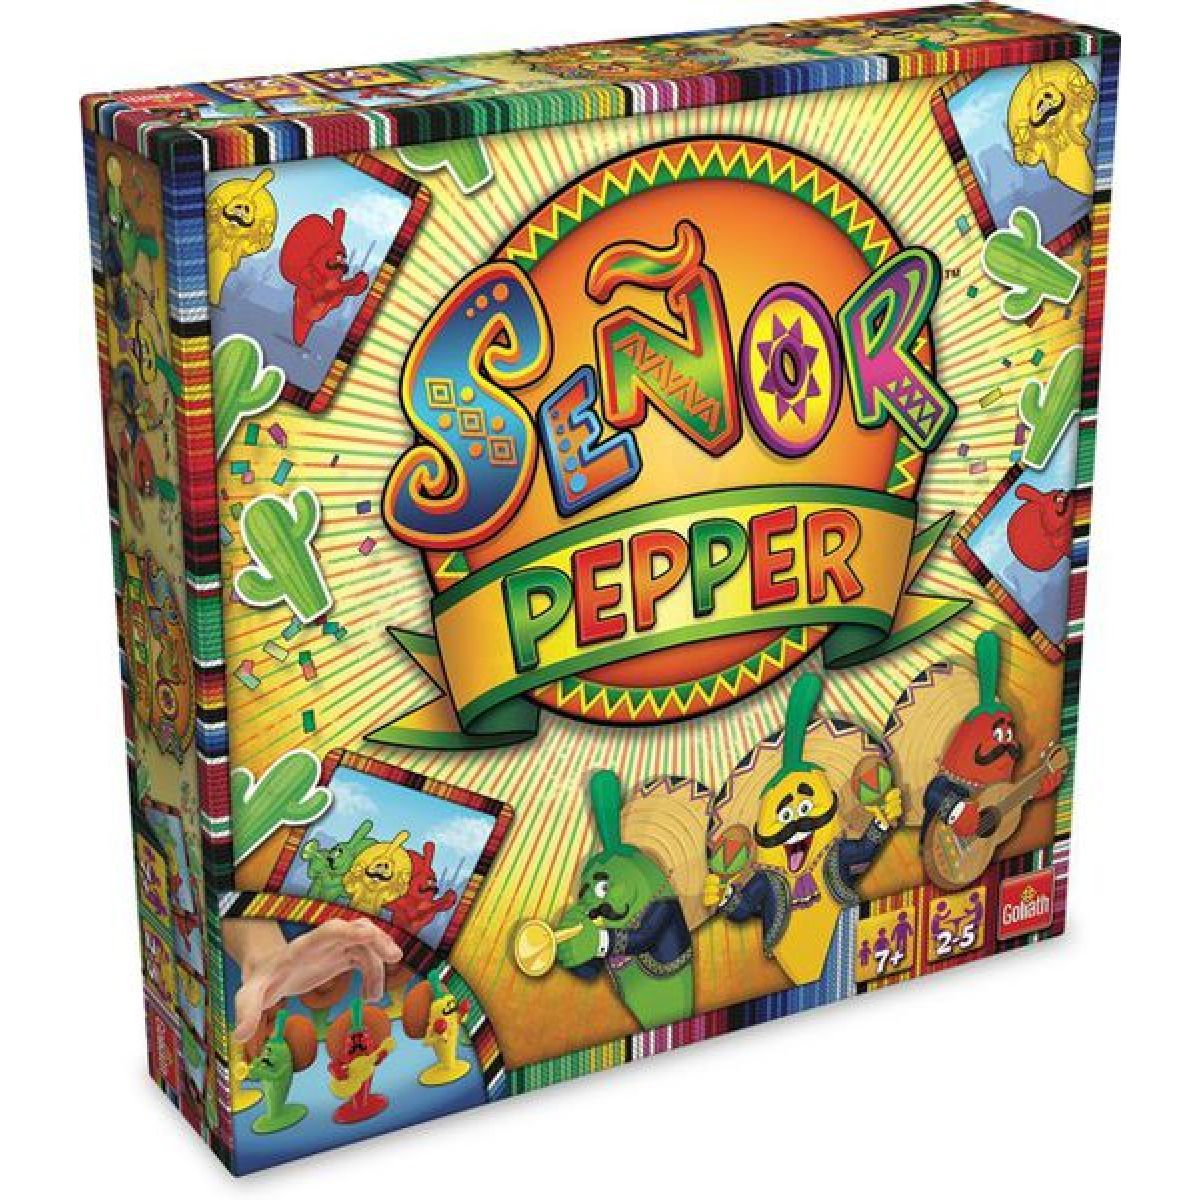 Cool Games Seňor Pepper